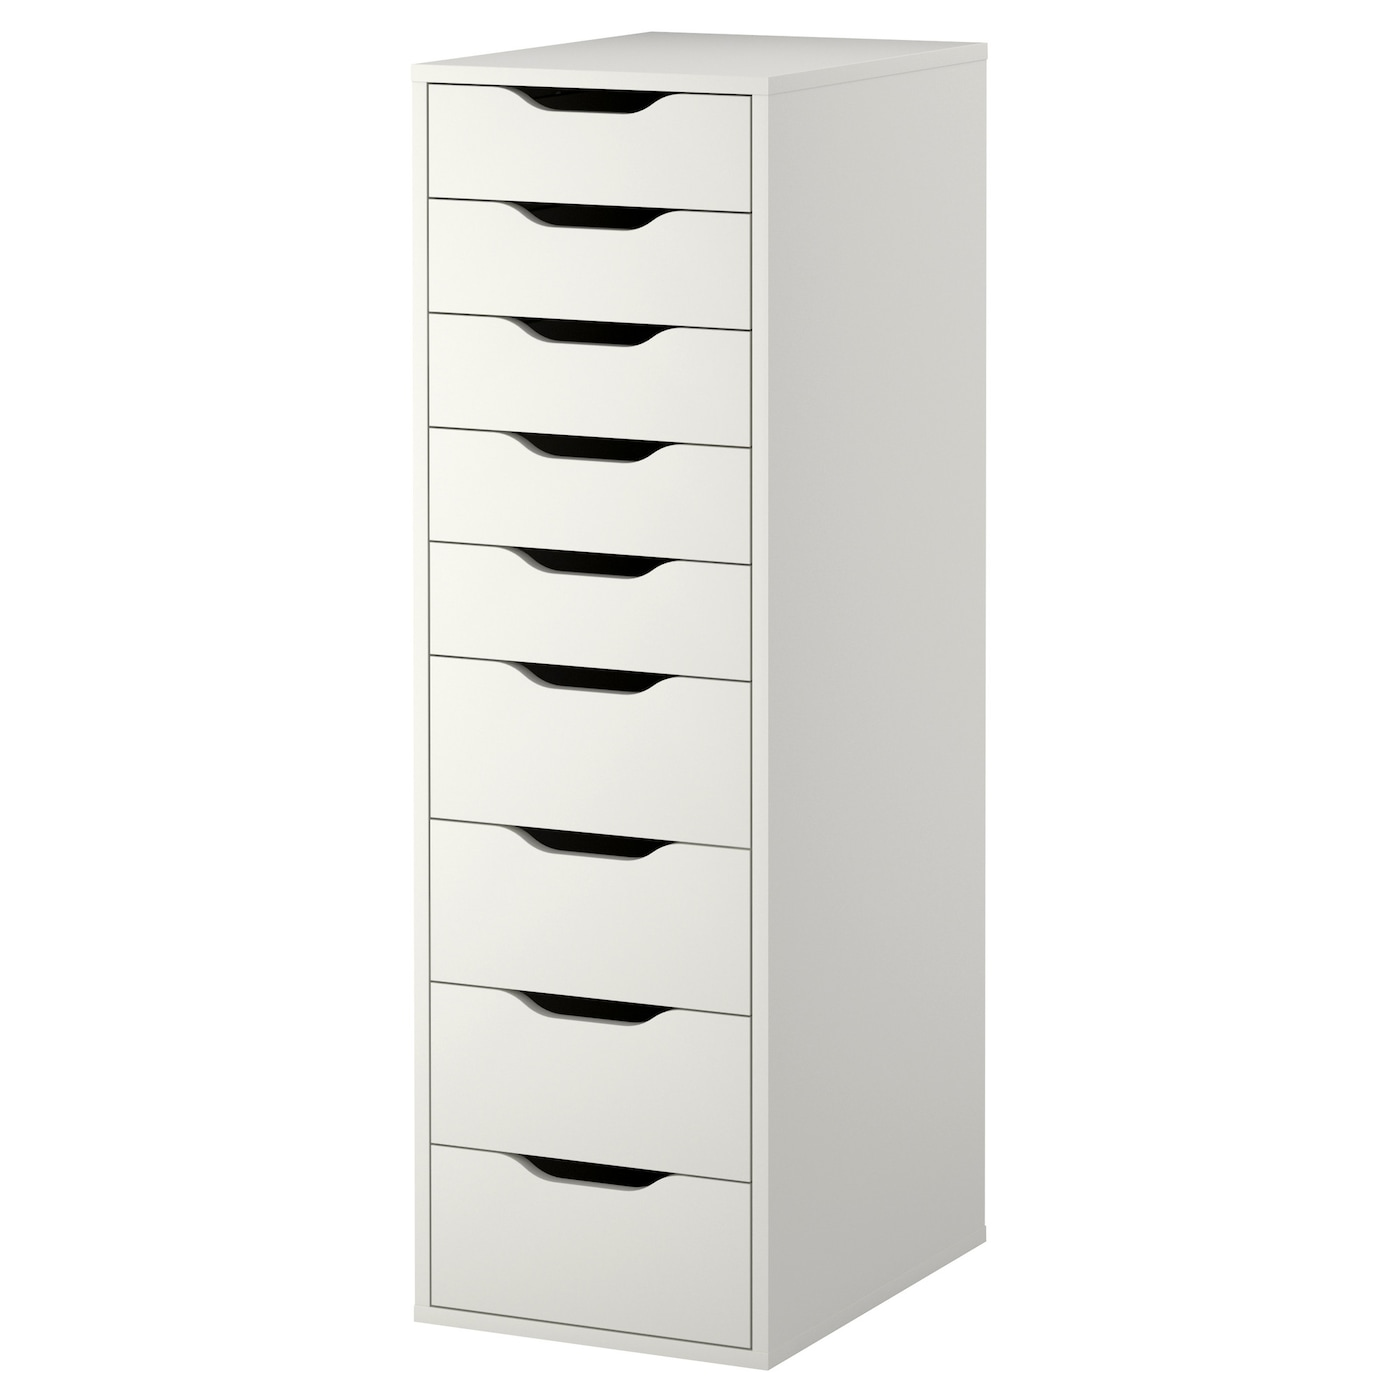 storage cabinets with drawers alex drawer unit with 9 drawers white 36 x 116 cm ikea 26854